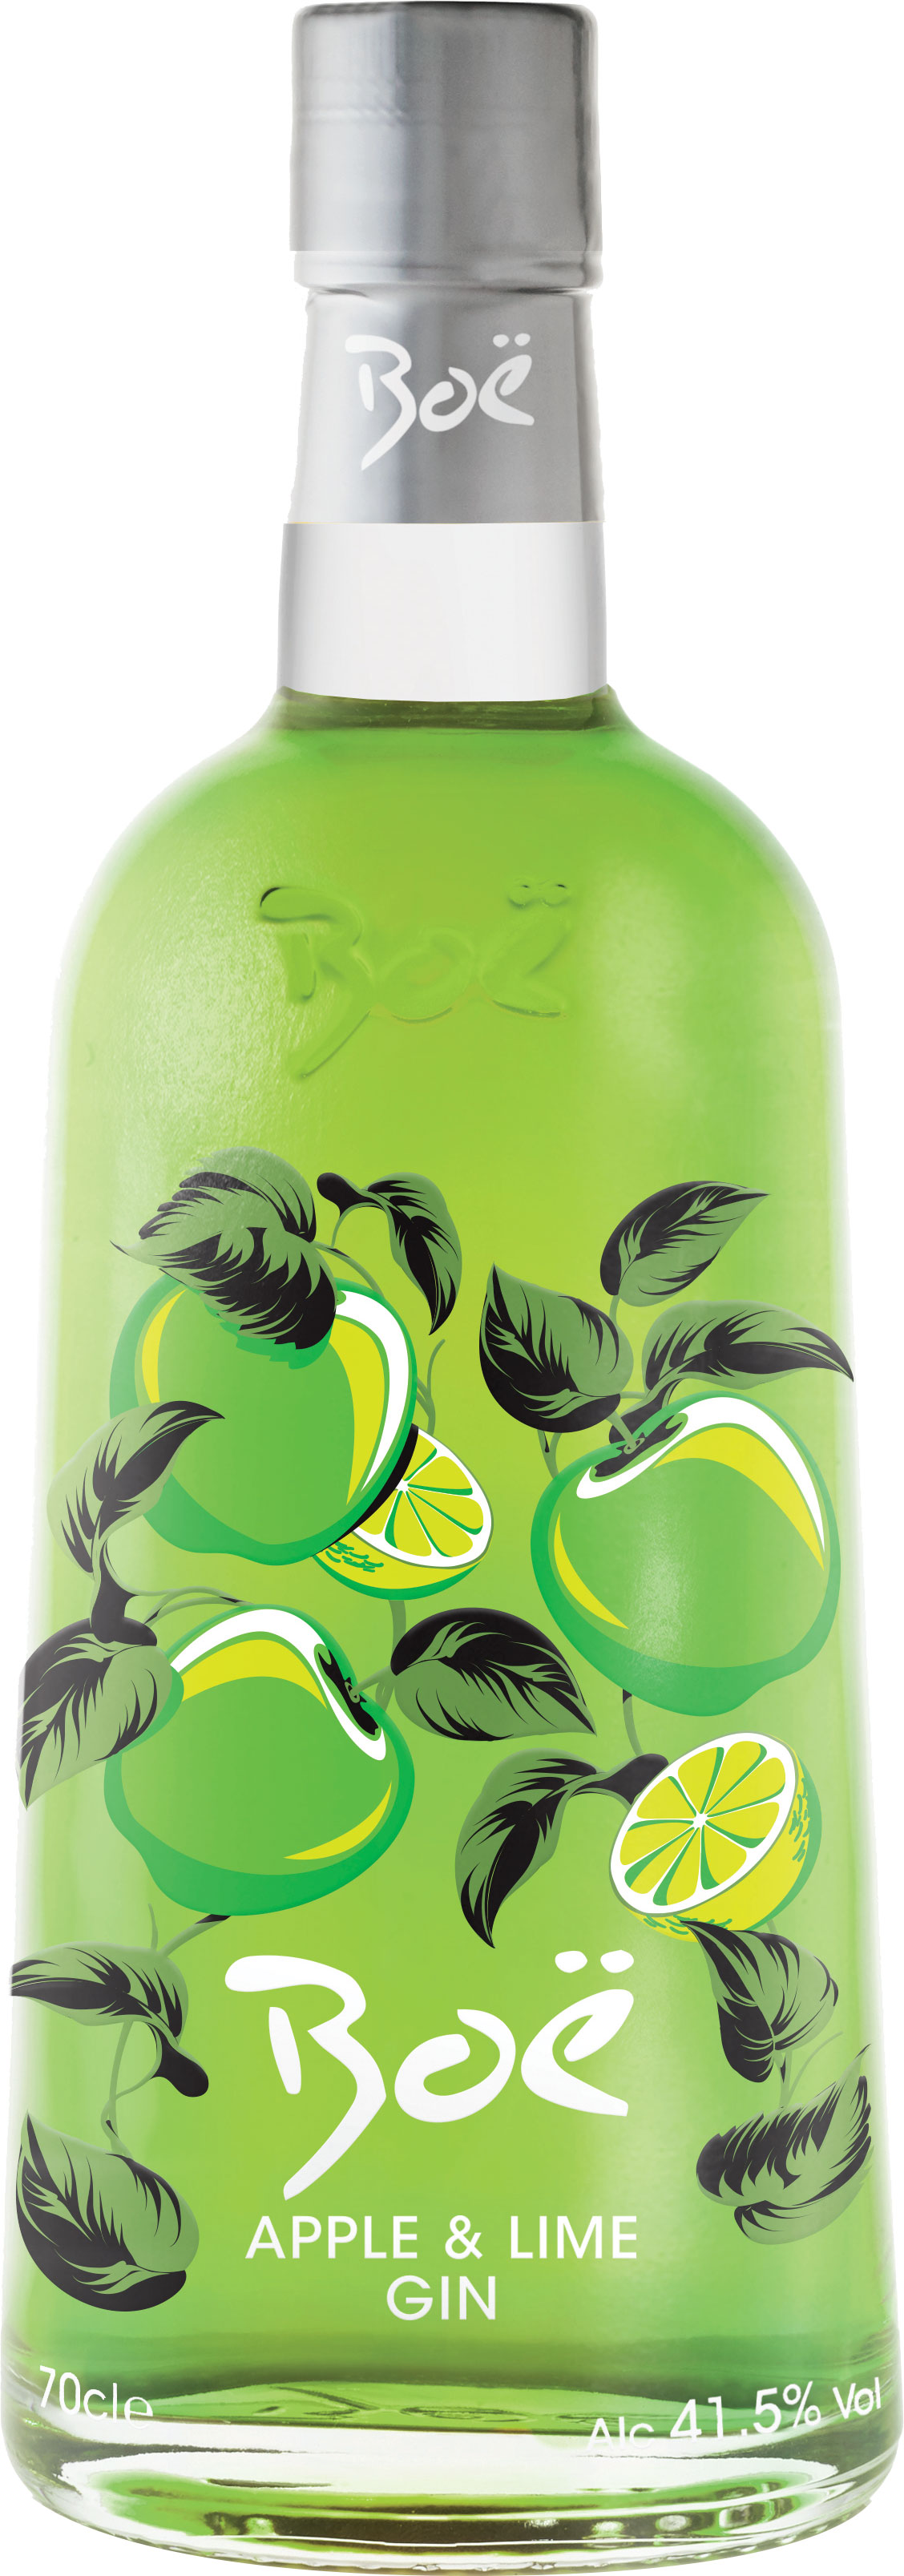 Boe - Apple & Lime Gin 70cl Bottle